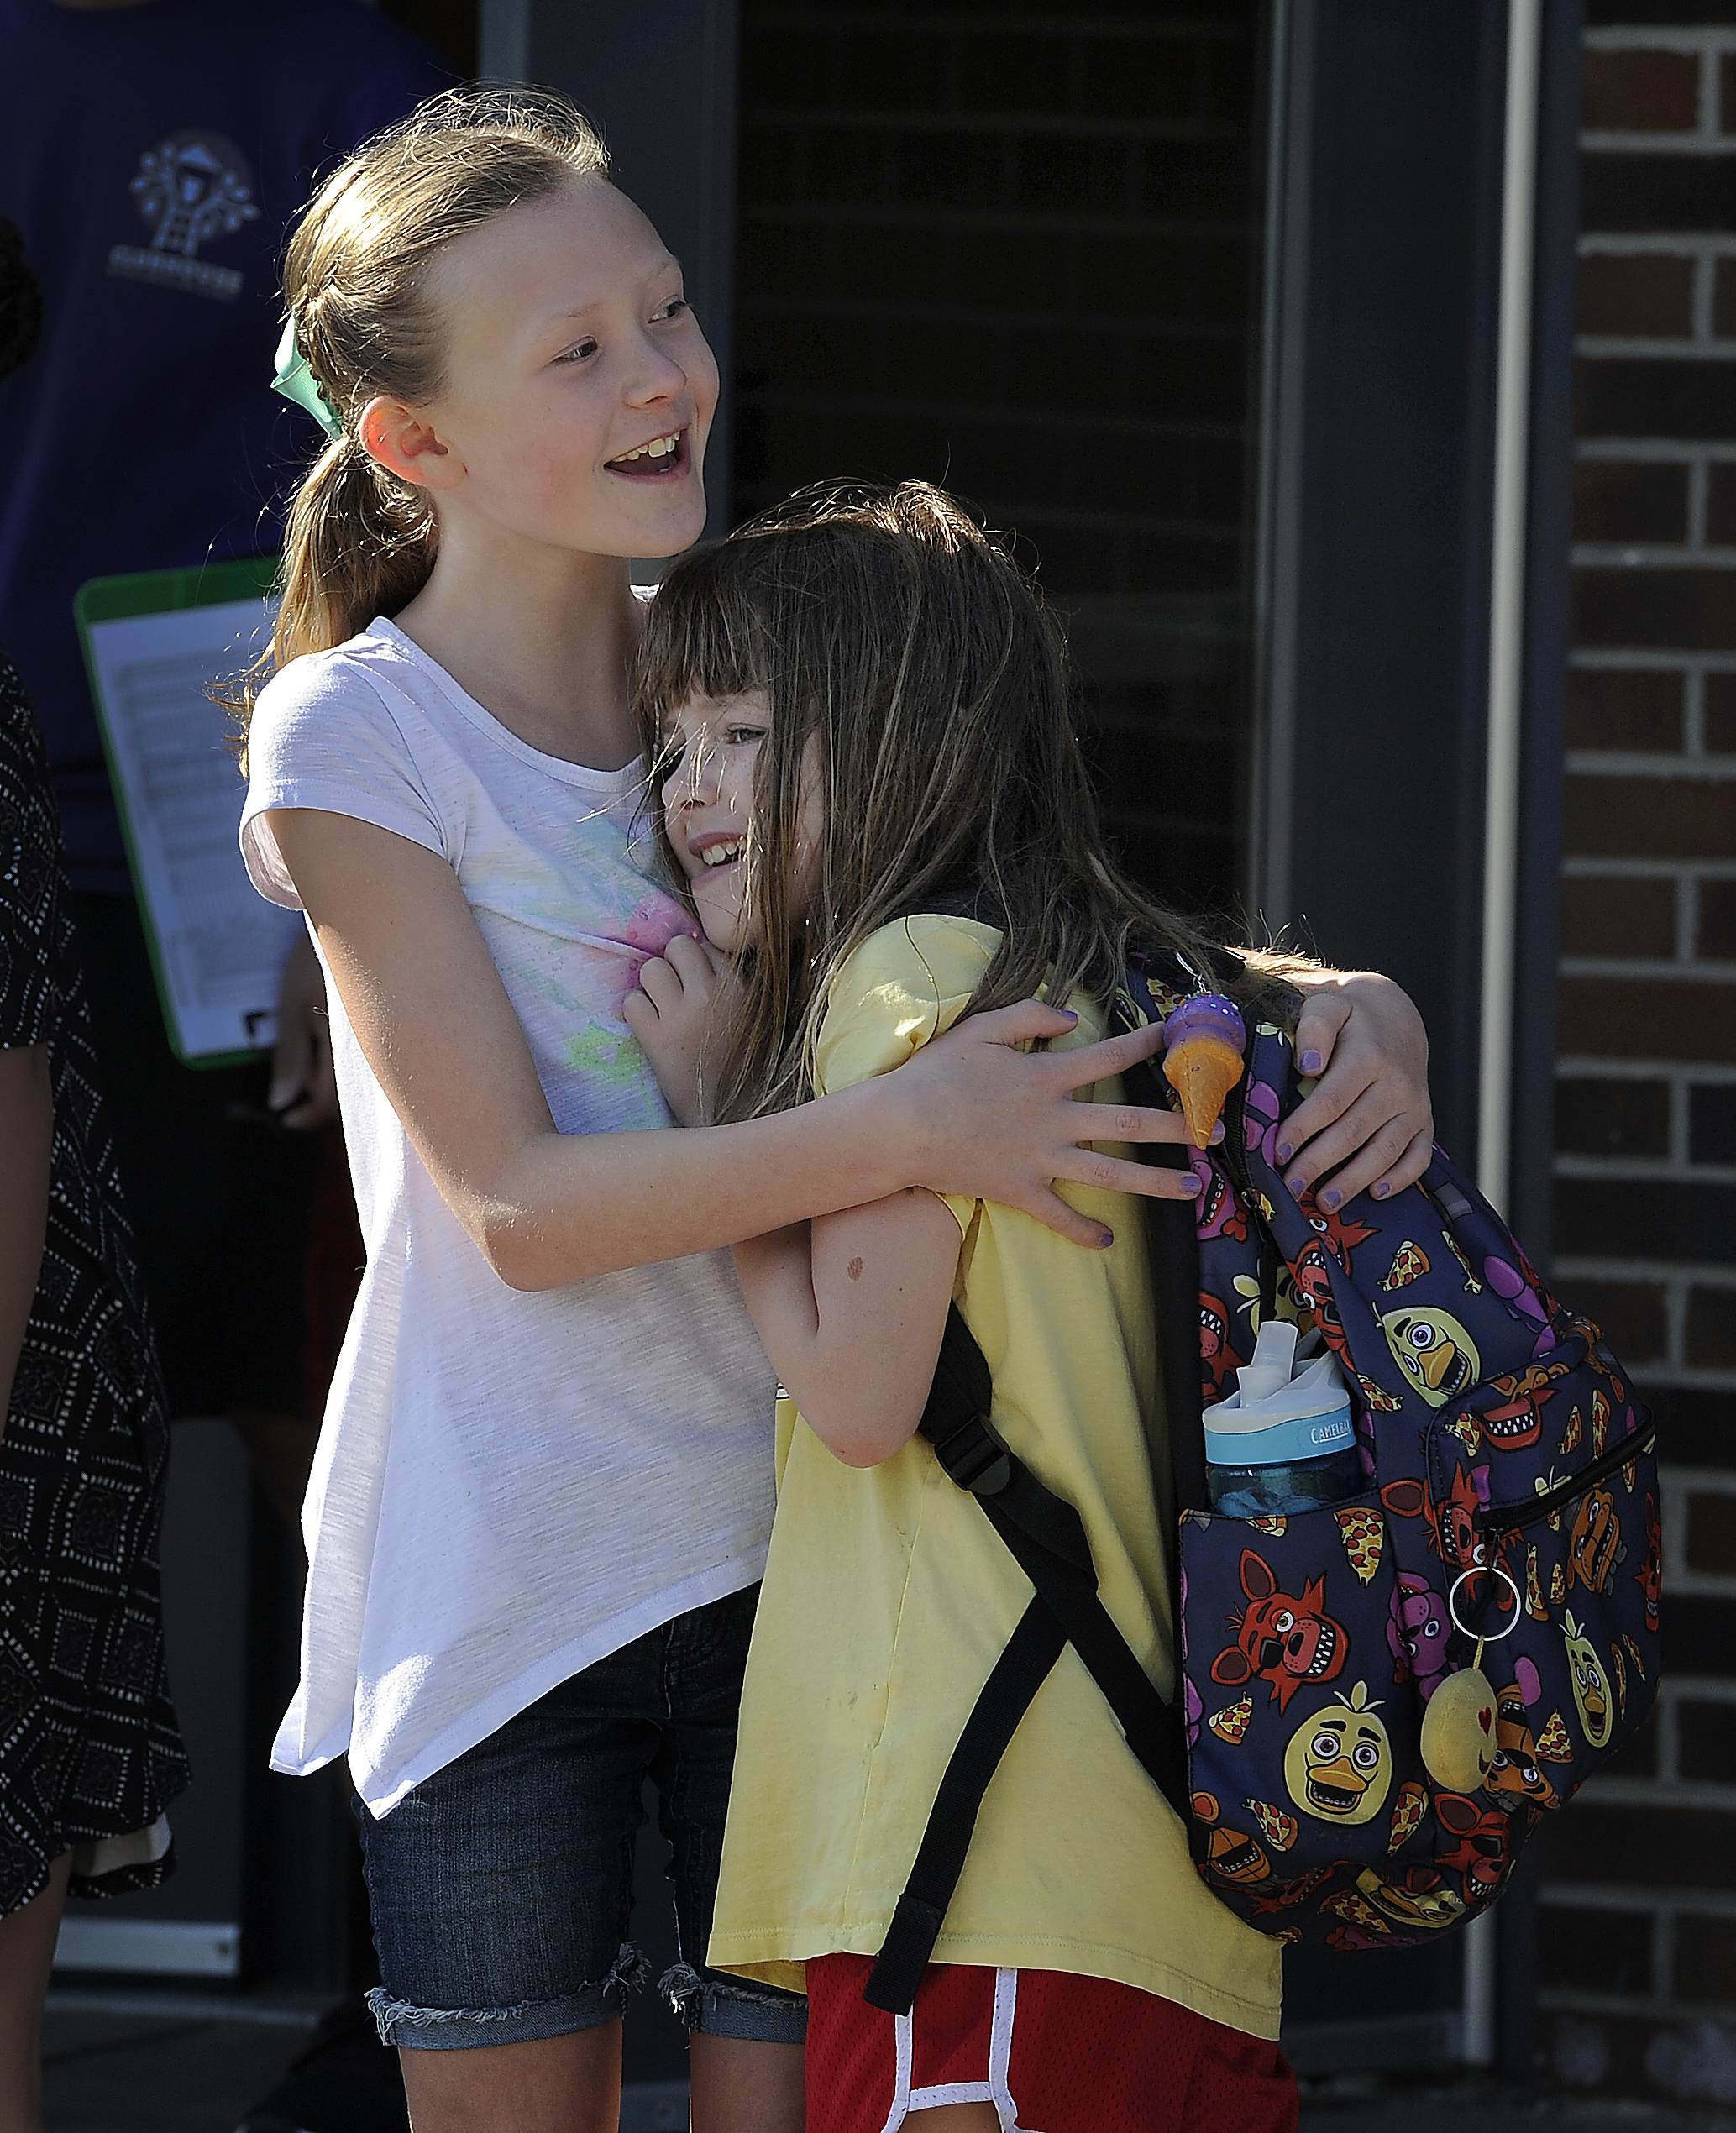 Kaden Monsen, 9, hugs Sari Baer, 11, as they head off to the fifth grade Wednesday at Longfellow Elementary School in Buffalo Grove.